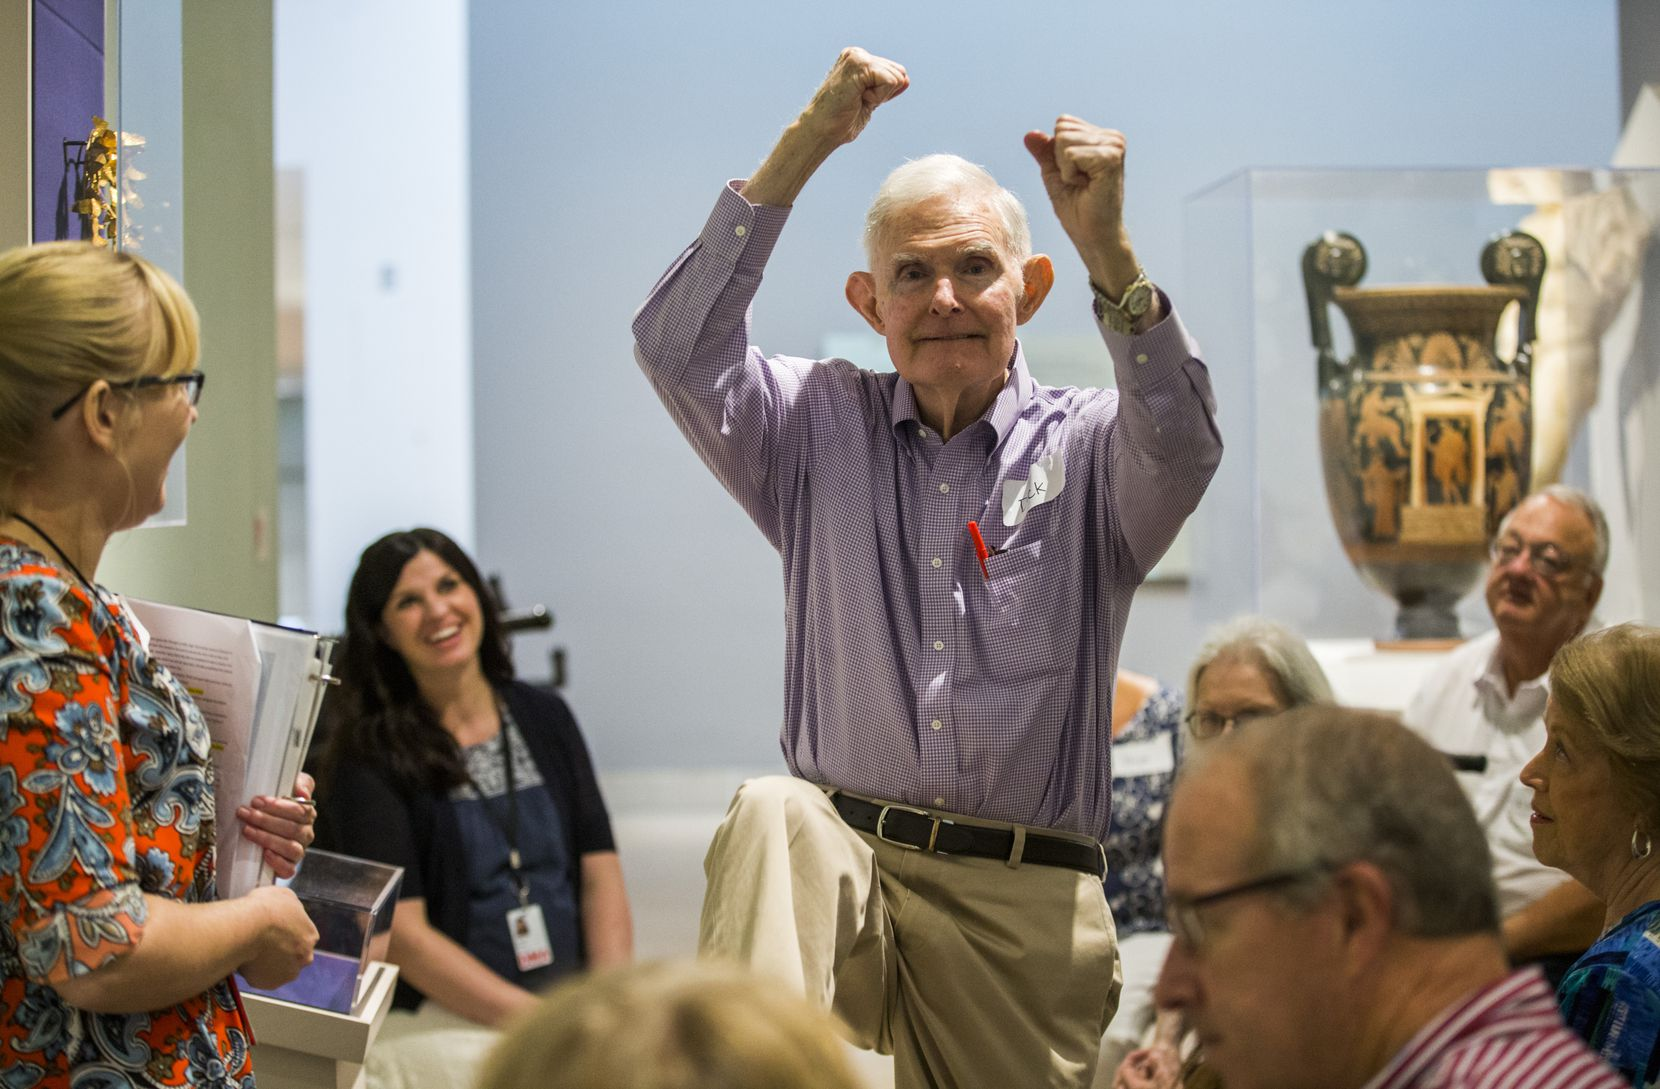 Dick Bernet makes a pole vaulting motion during a presentation on the Olympics and ancient Greece as part of the Meaningful Moments Program for individuals with early stages of dementia on Tuesday, August 16, 2016 at the DMA.